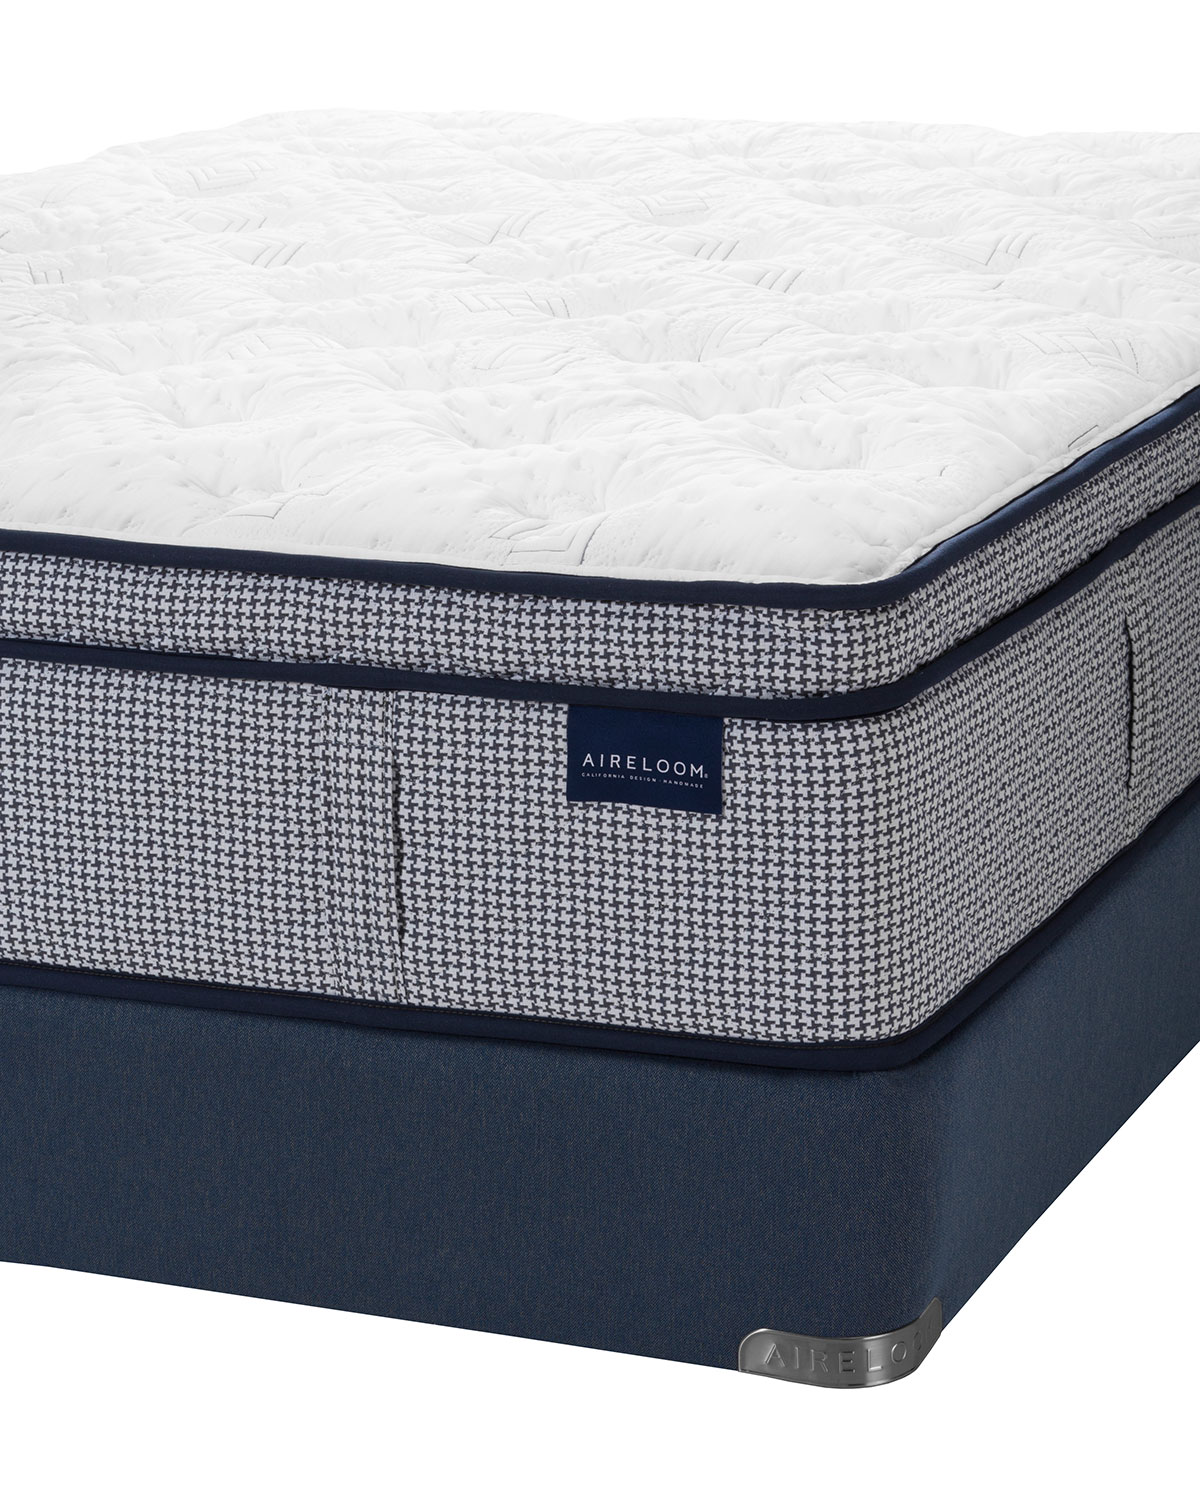 Aireloom Palisades Collection Coral Mattress - Full